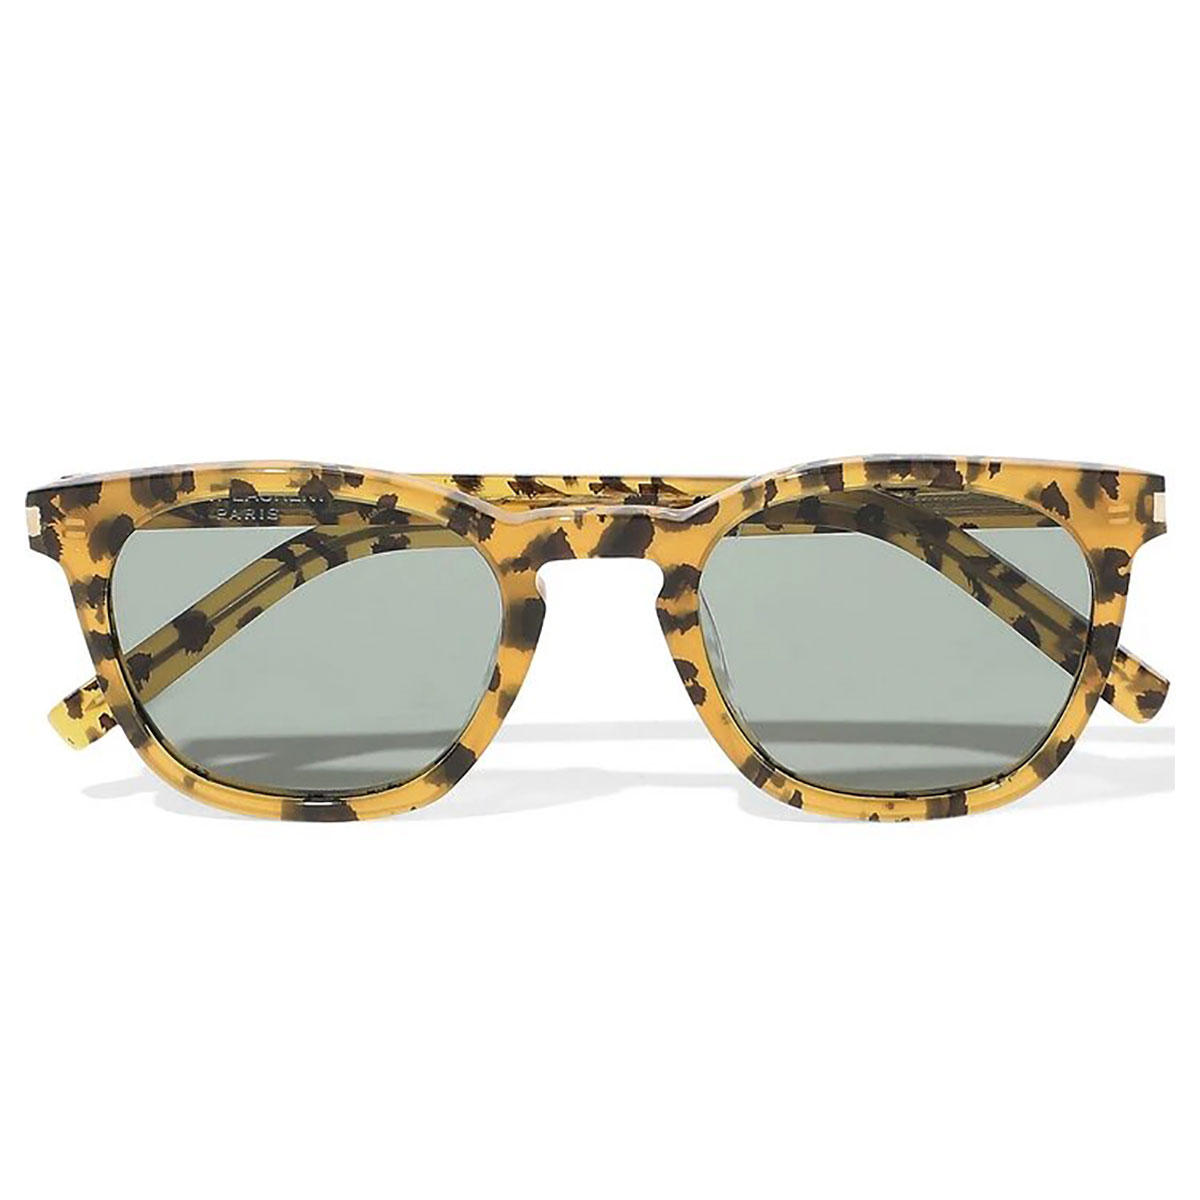 SAINT LAURENT D-frame leopard-print acetate sunglasses